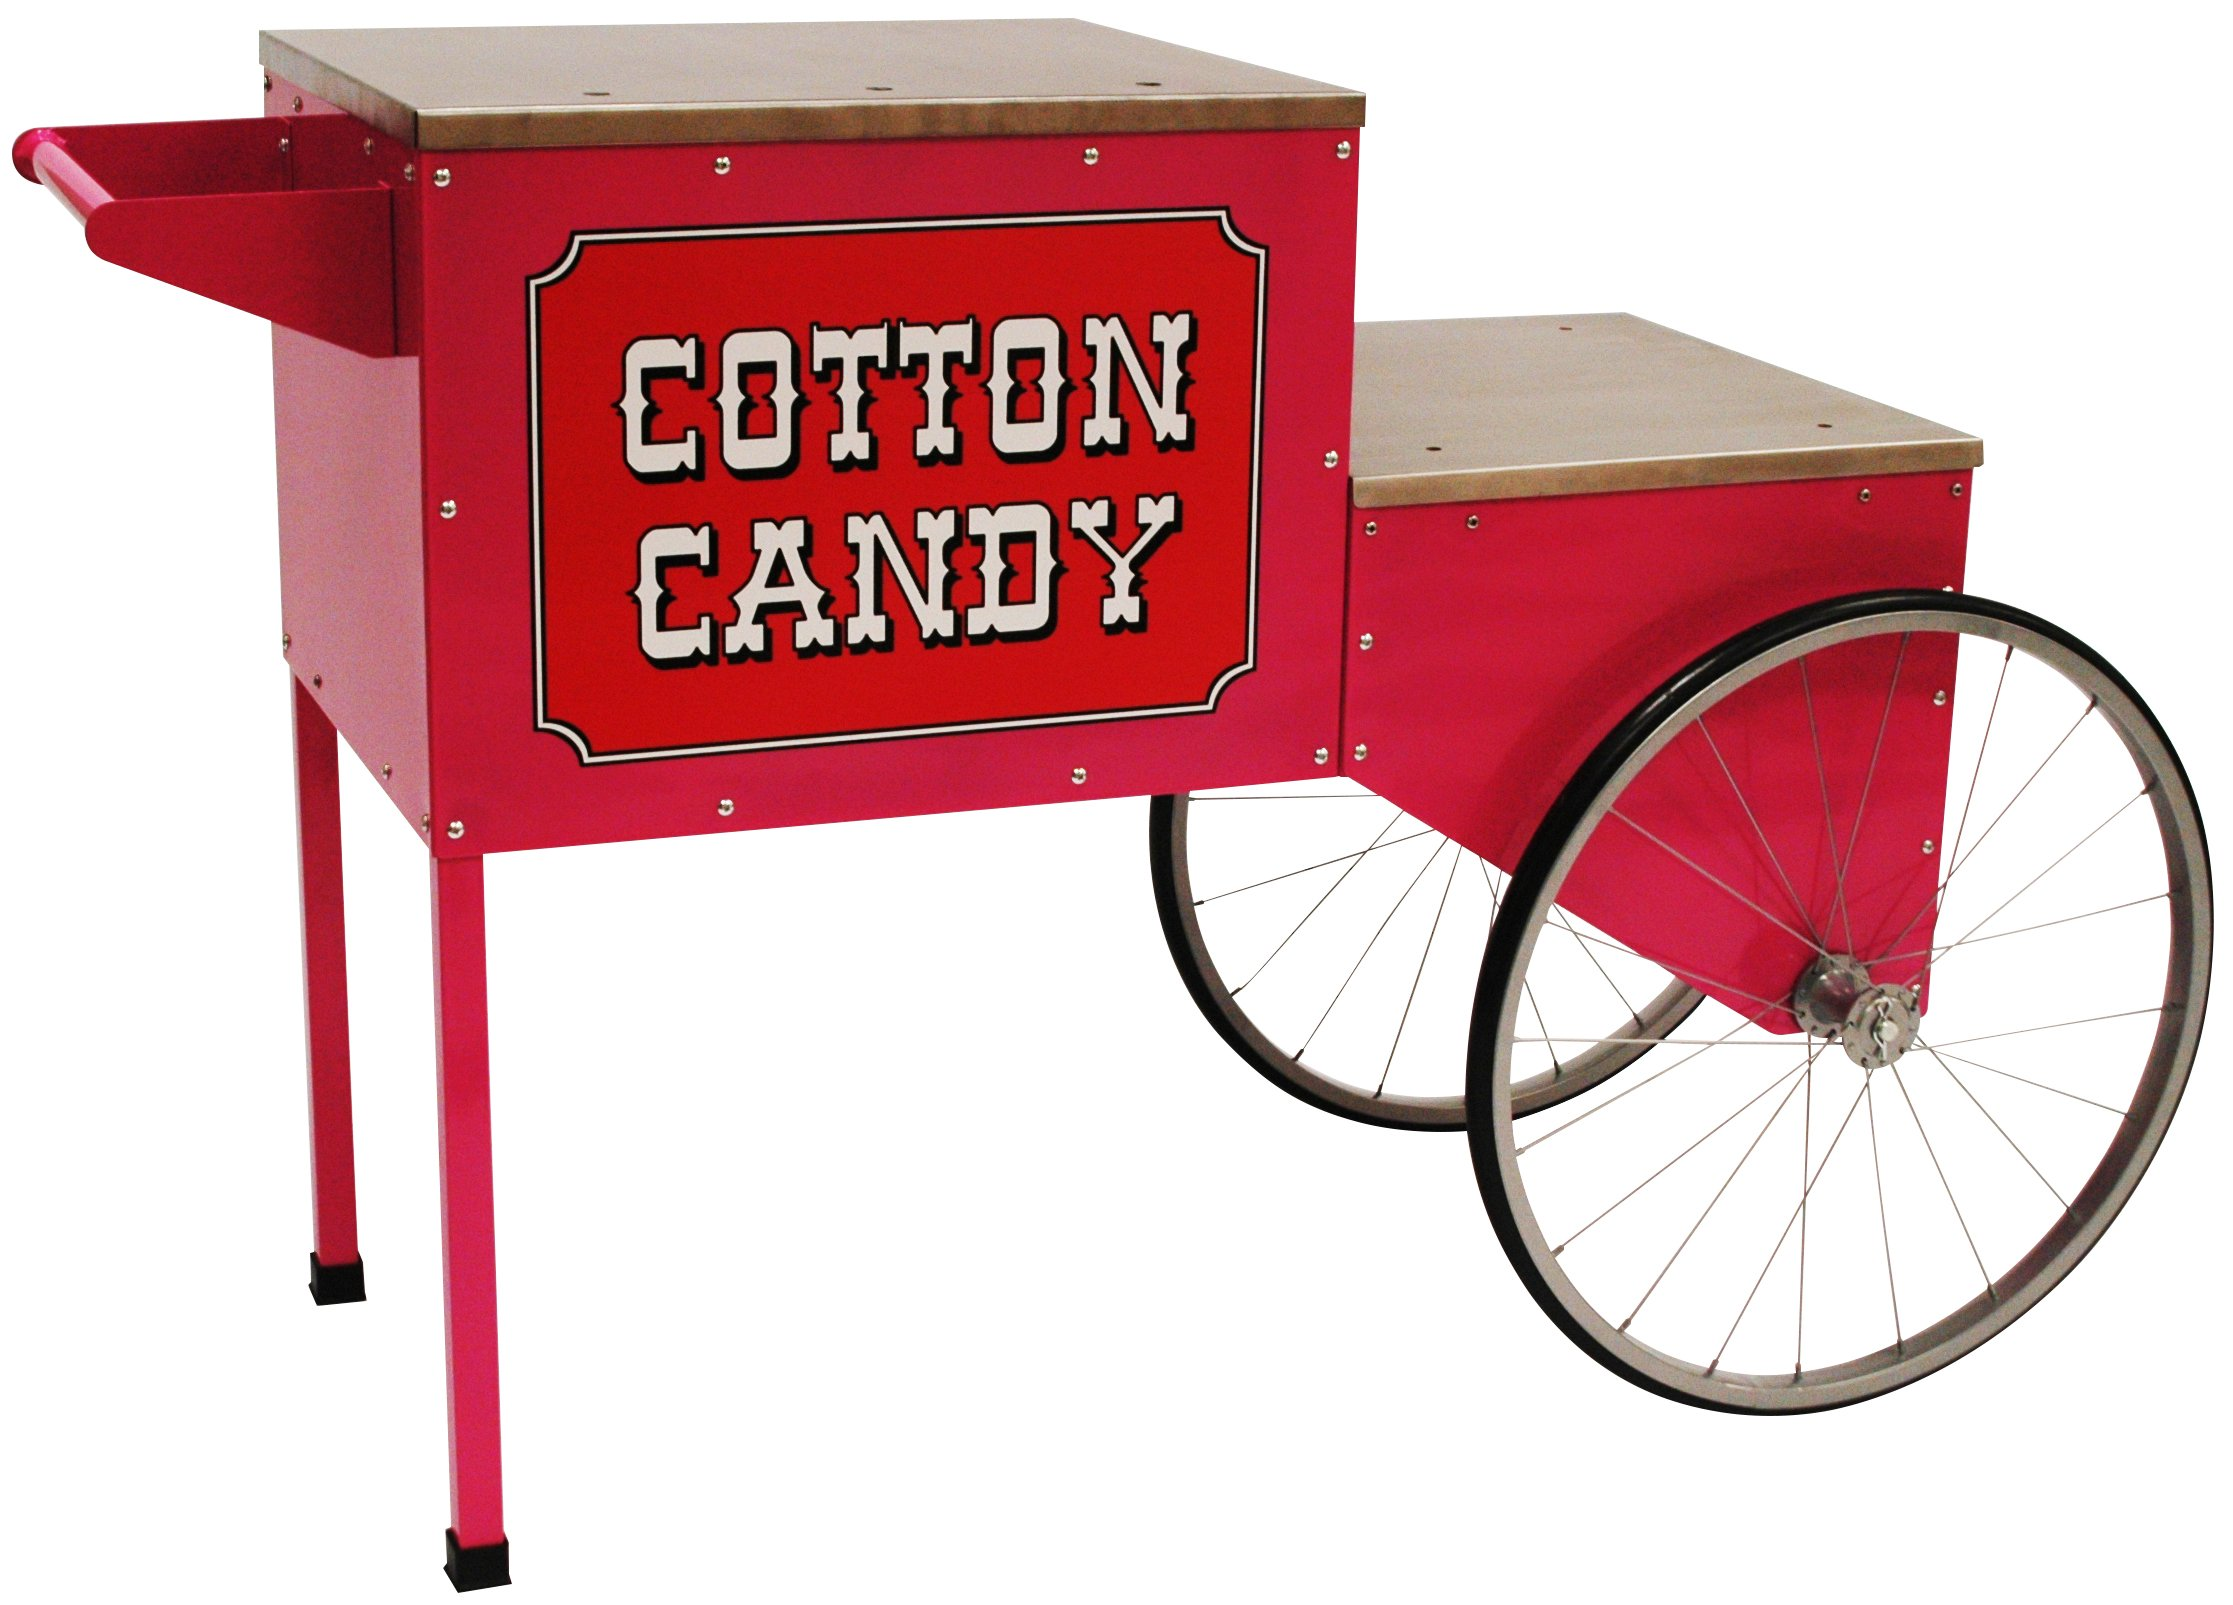 Benchmark USA 30090A Trolley for Cotton Candy Machine, Powder-Coated and Stainless Steel, Pink